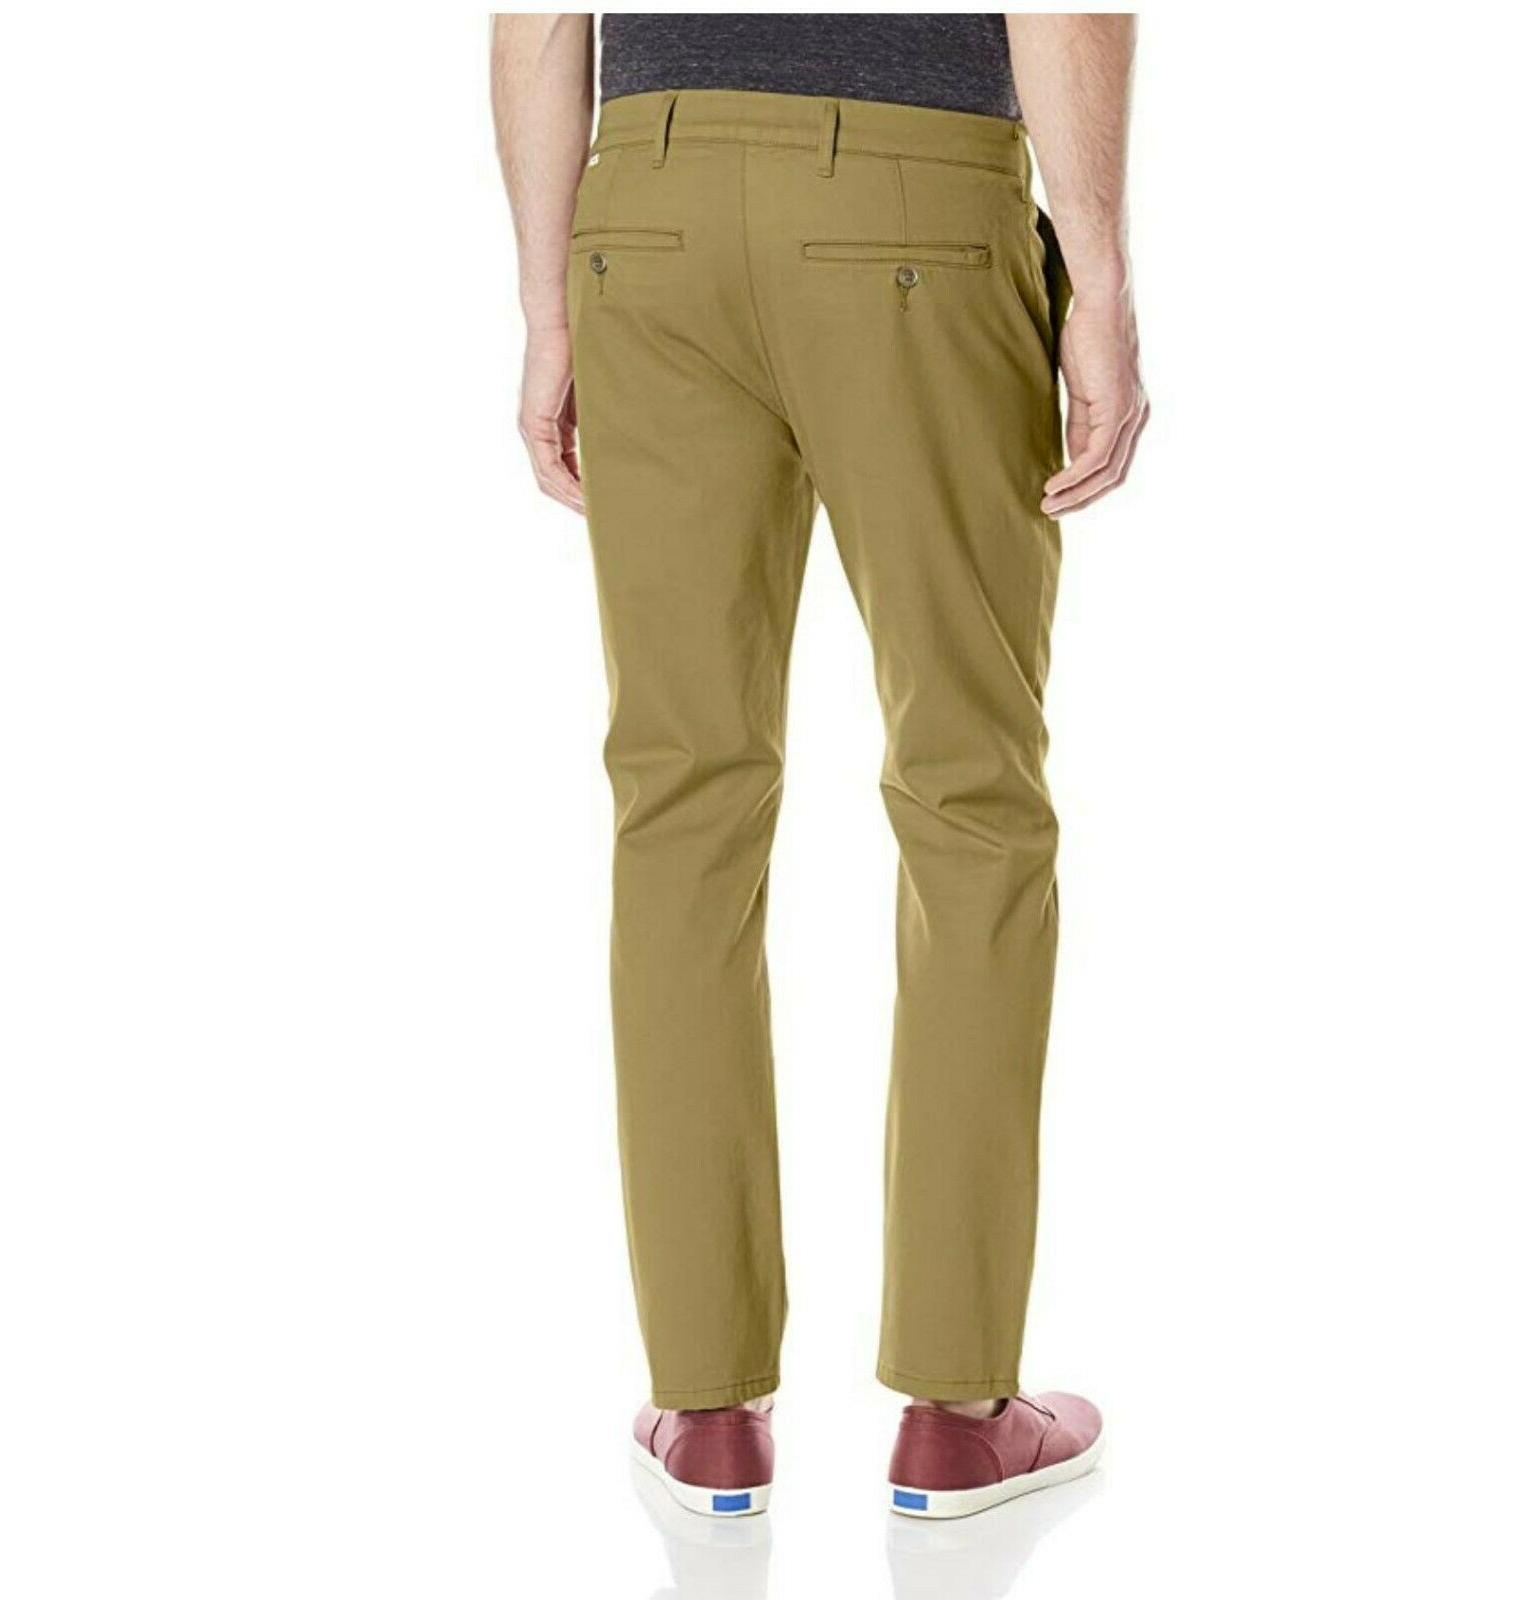 Levi's Men's Straight Chino Pant, 0040